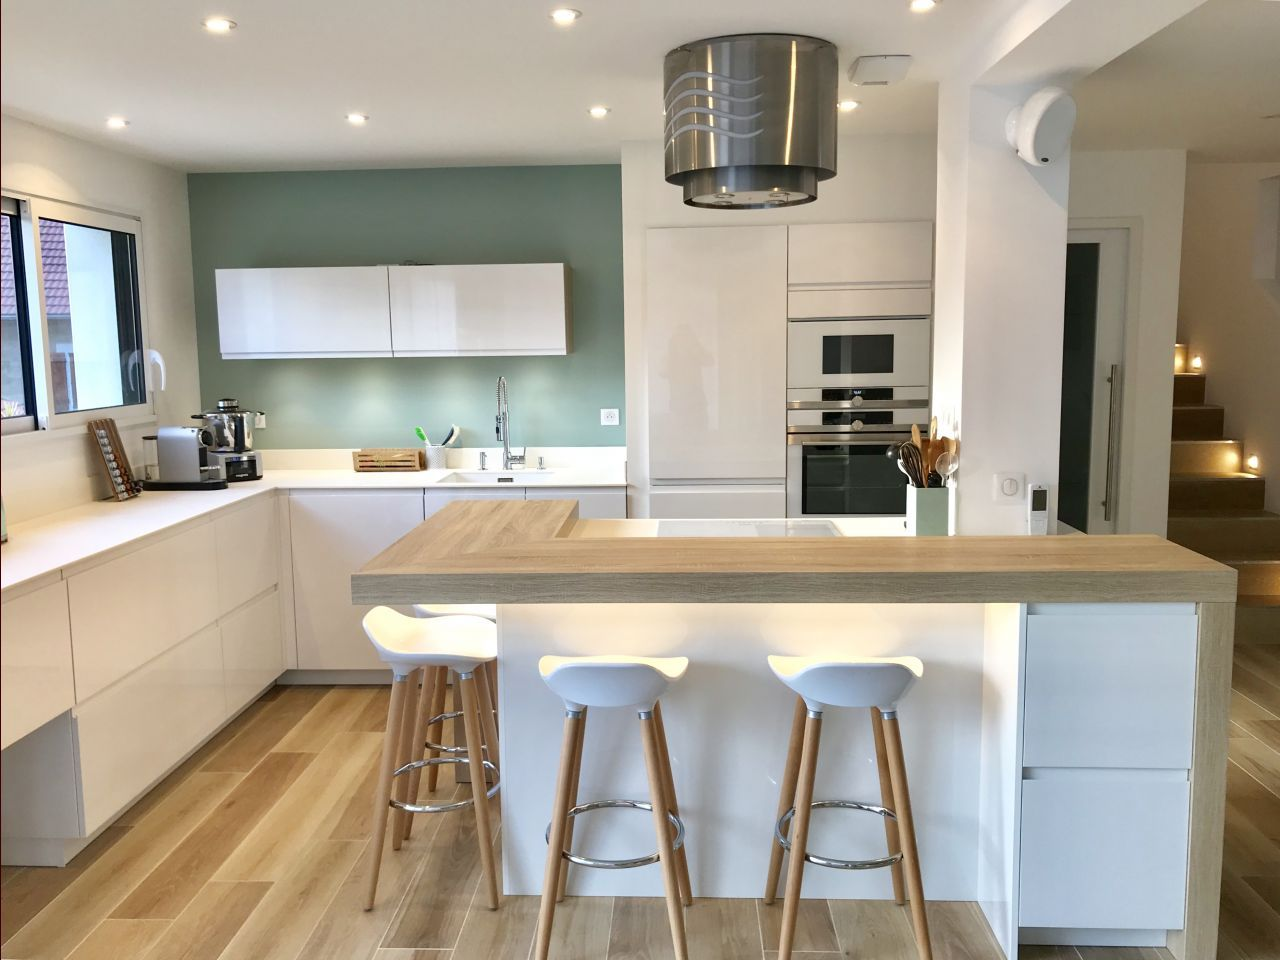 Cuisine Mobalpa Cuisine Pinterest Kitchens Interiors And House